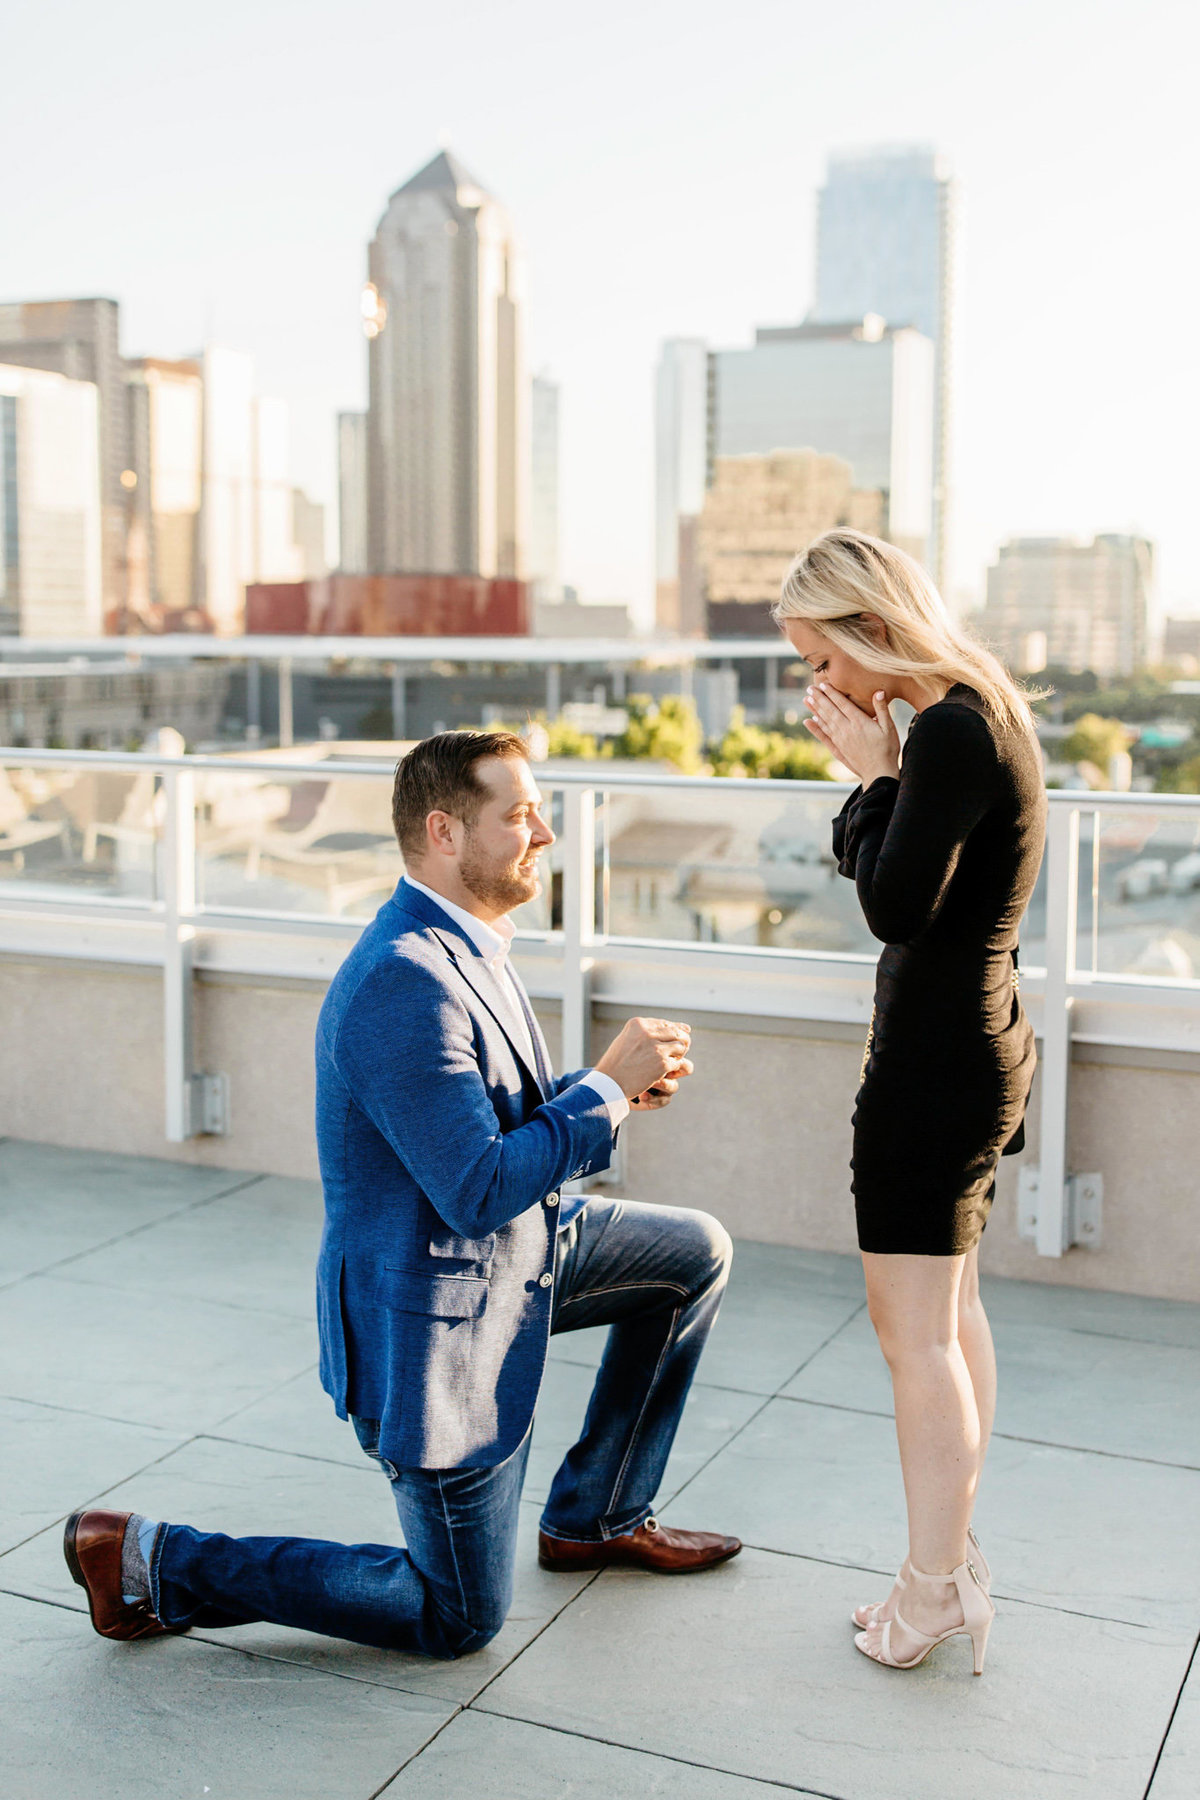 Eric & Megan - Downtown Dallas Rooftop Proposal & Engagement Session-34